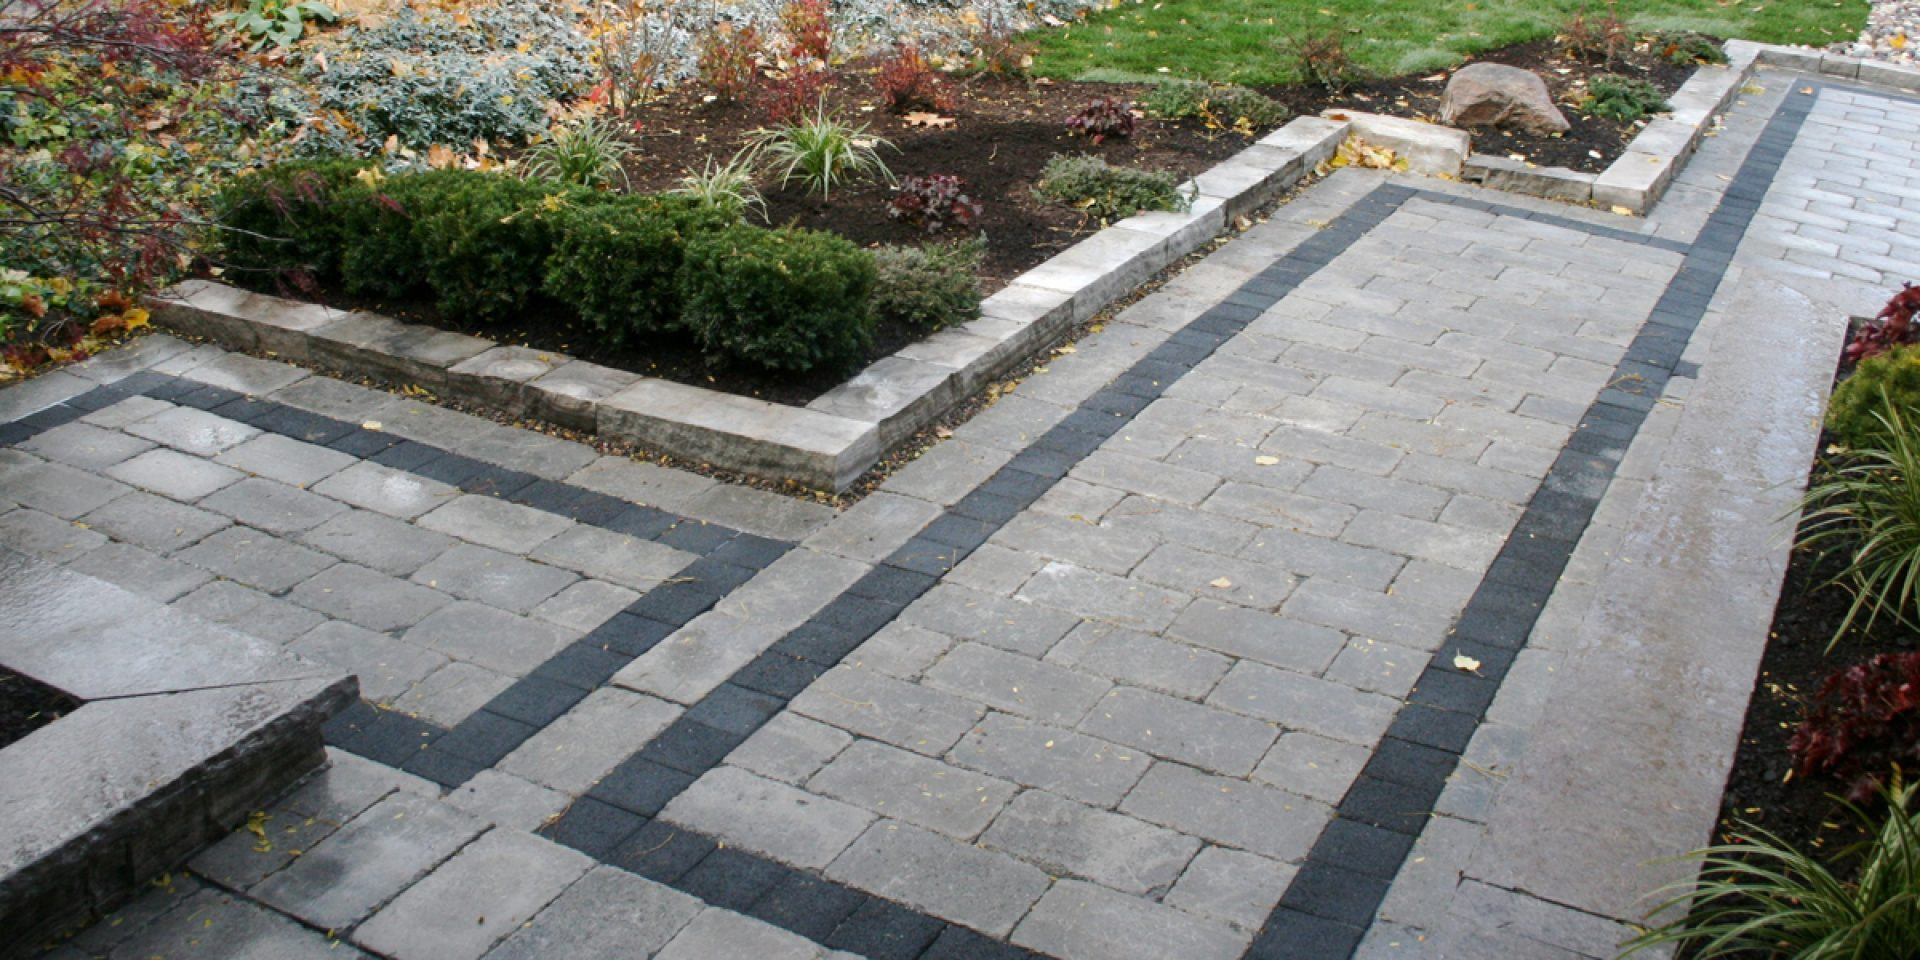 More about the Tiles and Interlocking